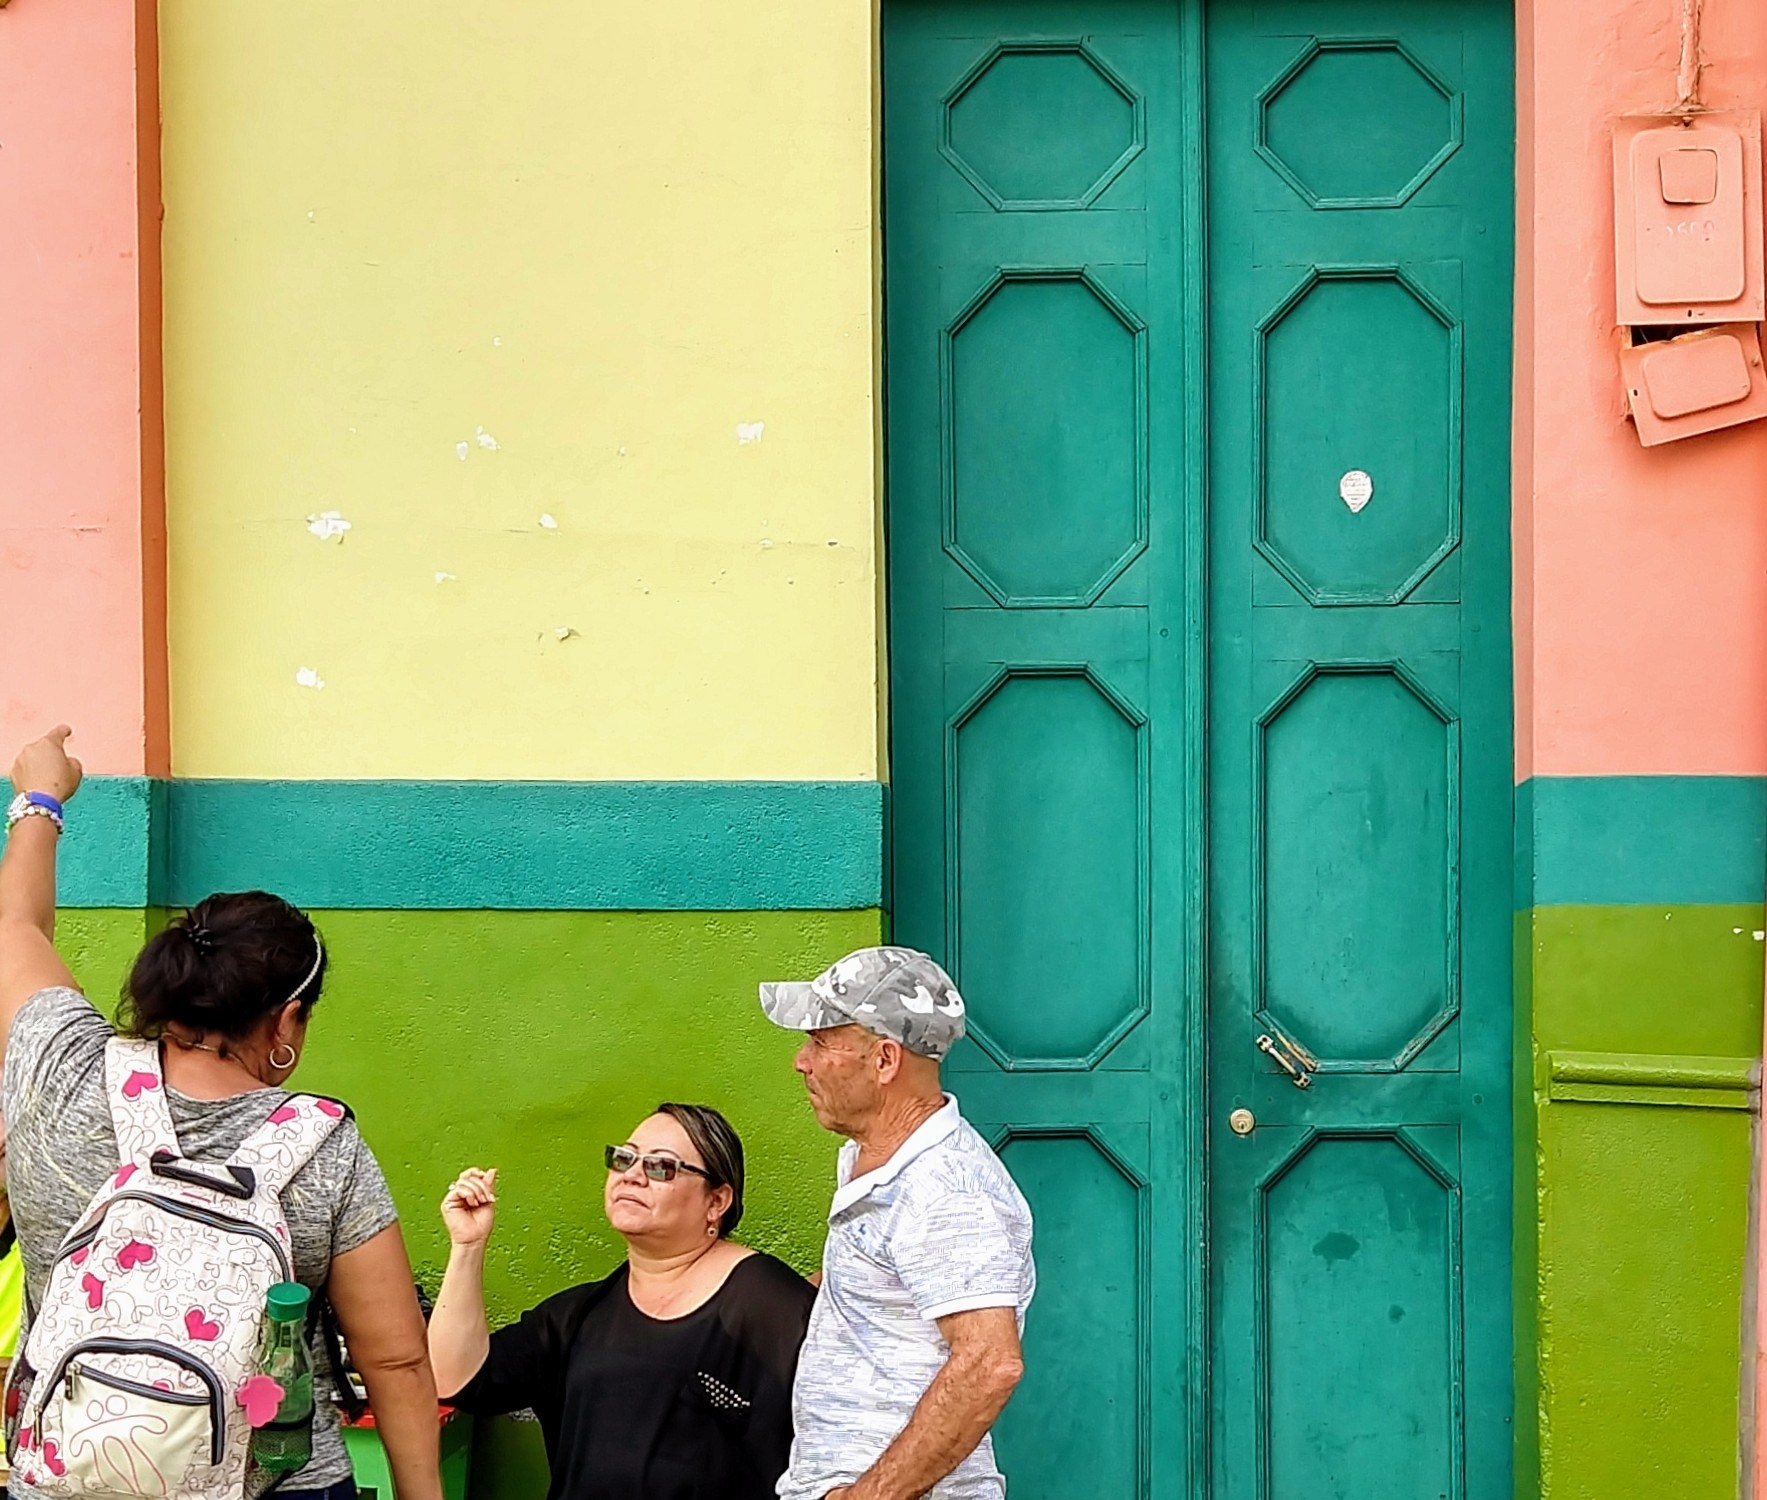 Jardin locals chat in front of a colorful house